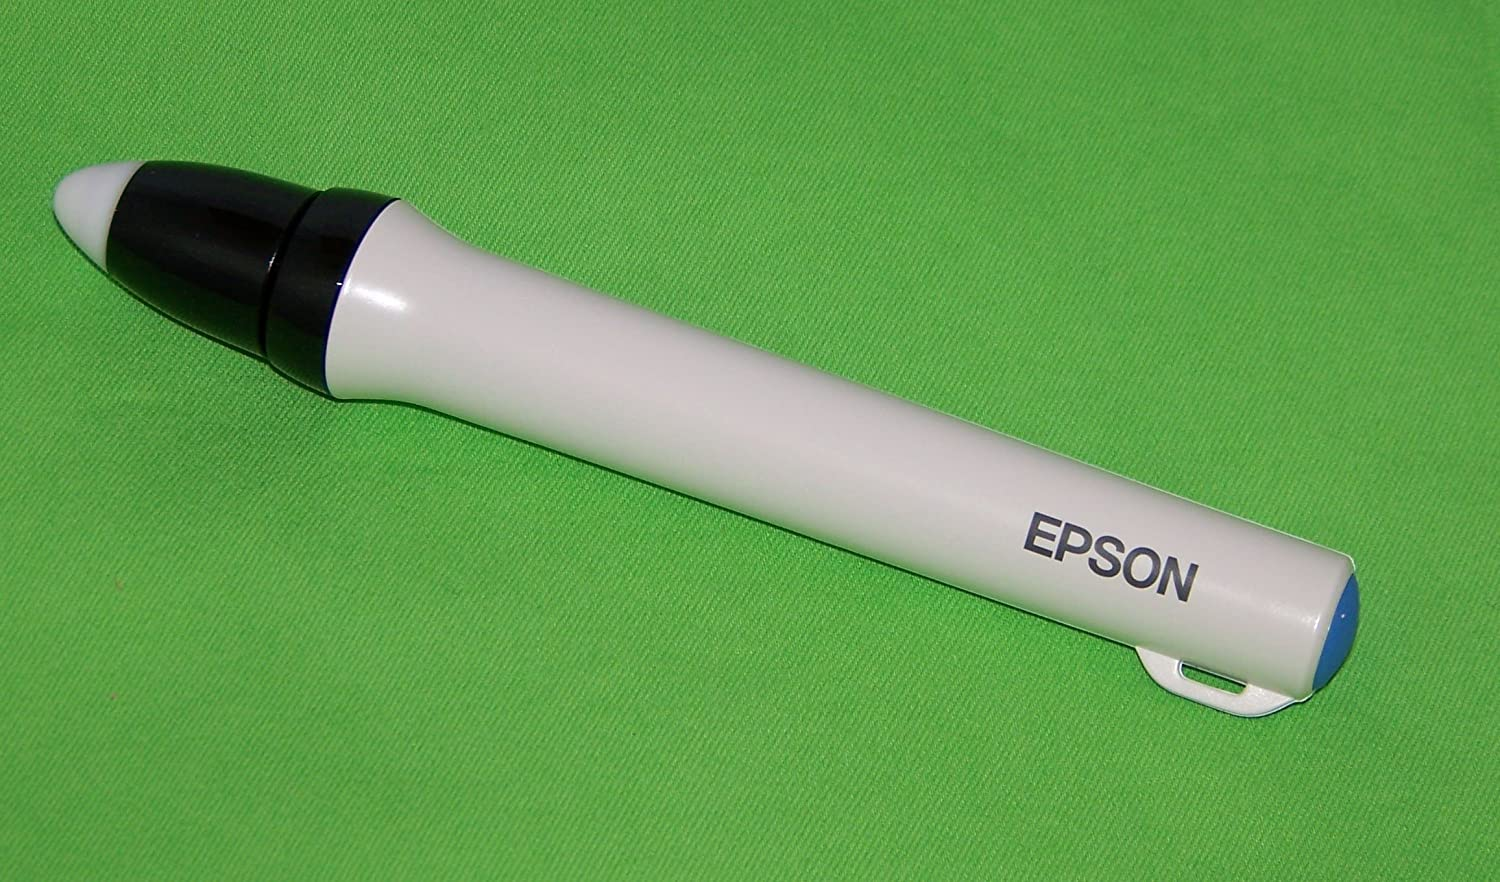 685Wi 675Wi+ 710Ui 695Wi 697Ui OEM Epson Projector BLUE Interactive Pen For Epson BrightLink 675Wi 685Wi+ 696Ui